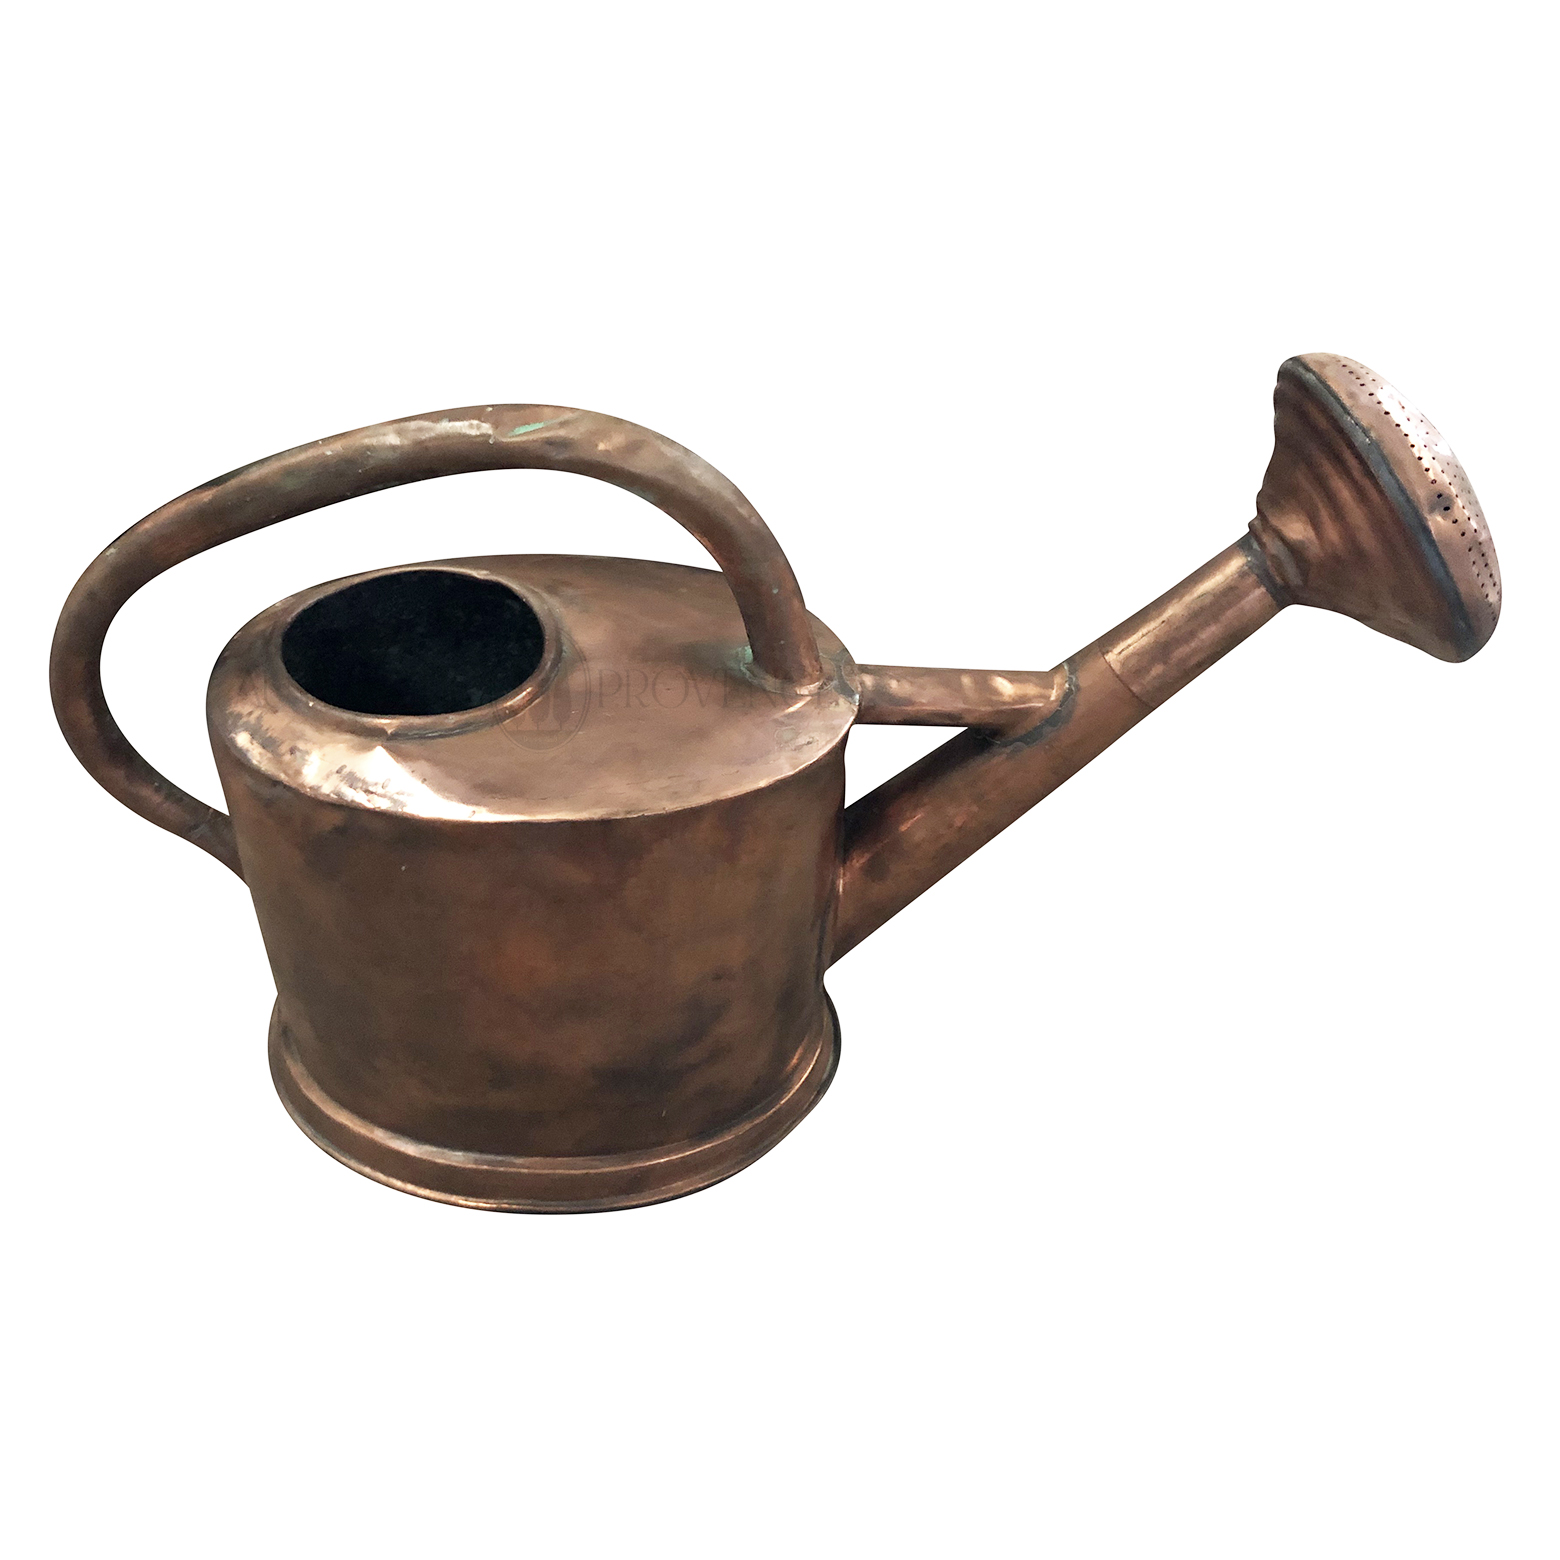 Overhead view of an antique French watering can in copper